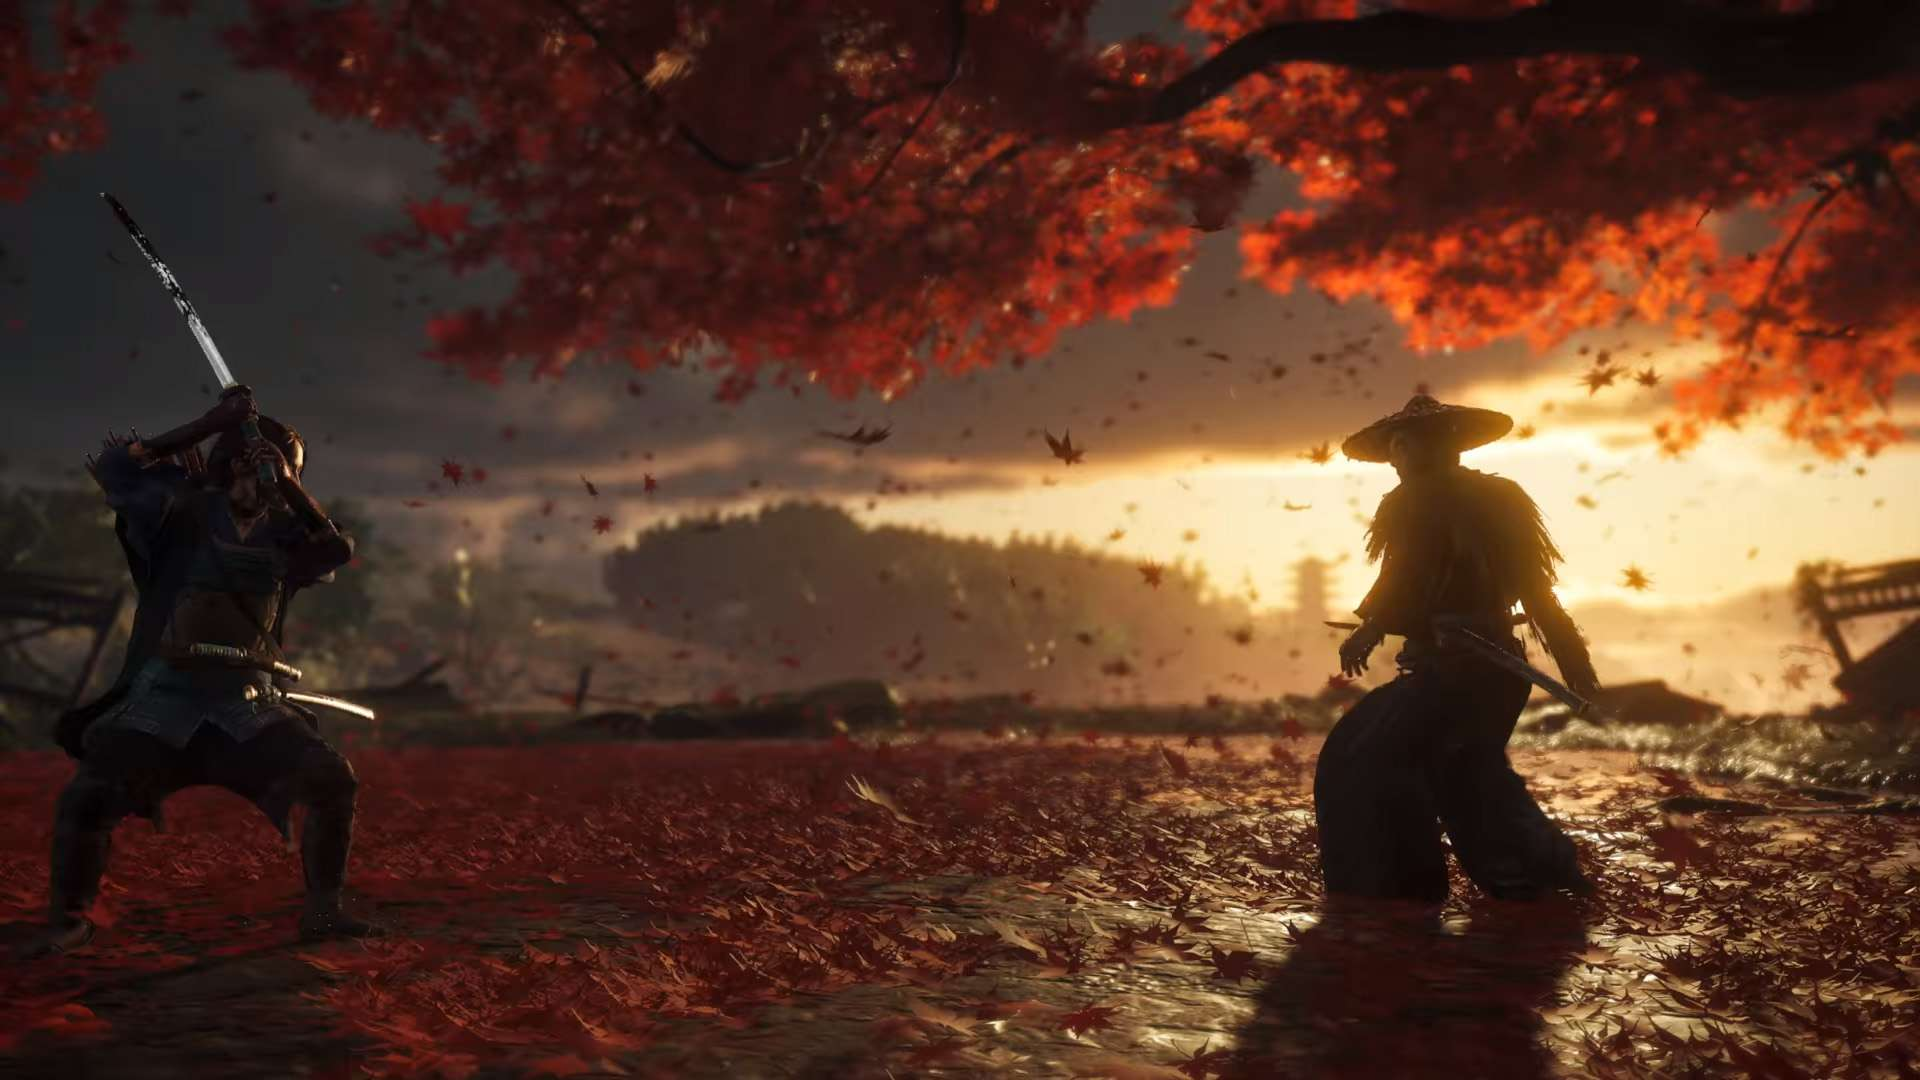 Ghost Of Tsushima Wallpapers - Wallpaper Cave